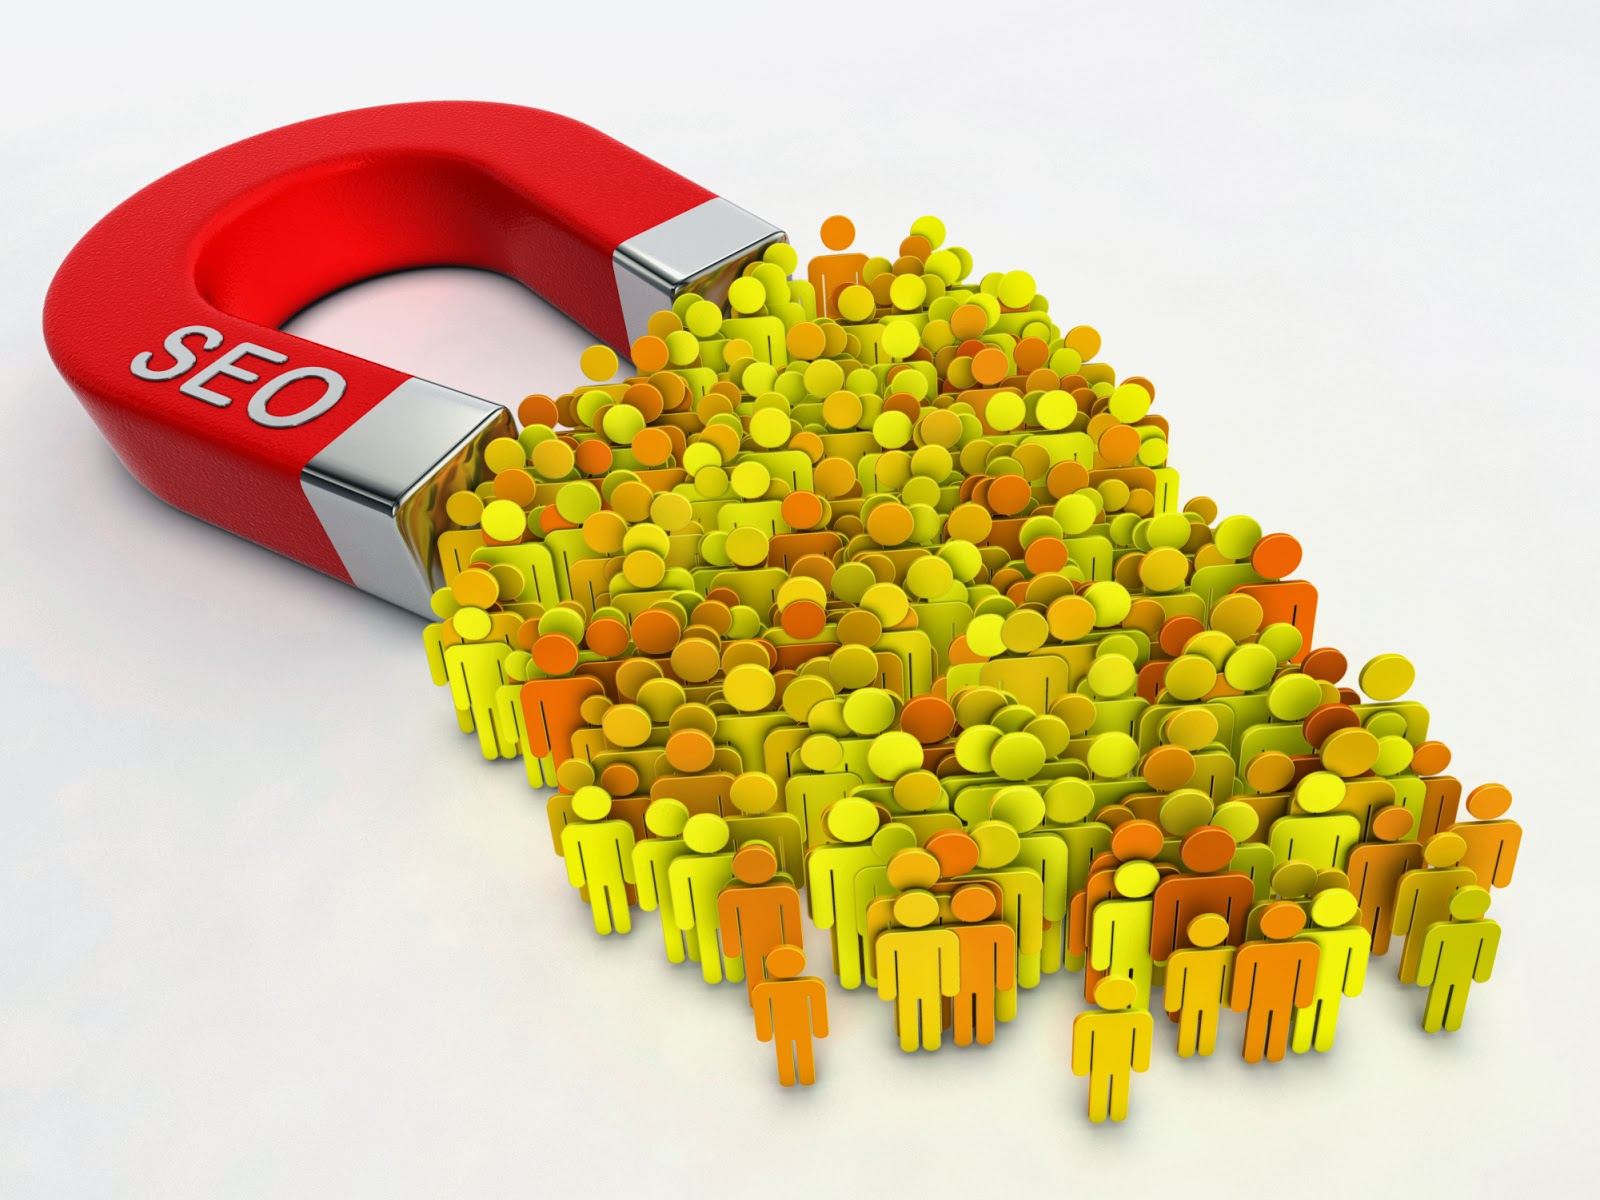 I sell web traffic for very cheap prices 10k+ of worl...